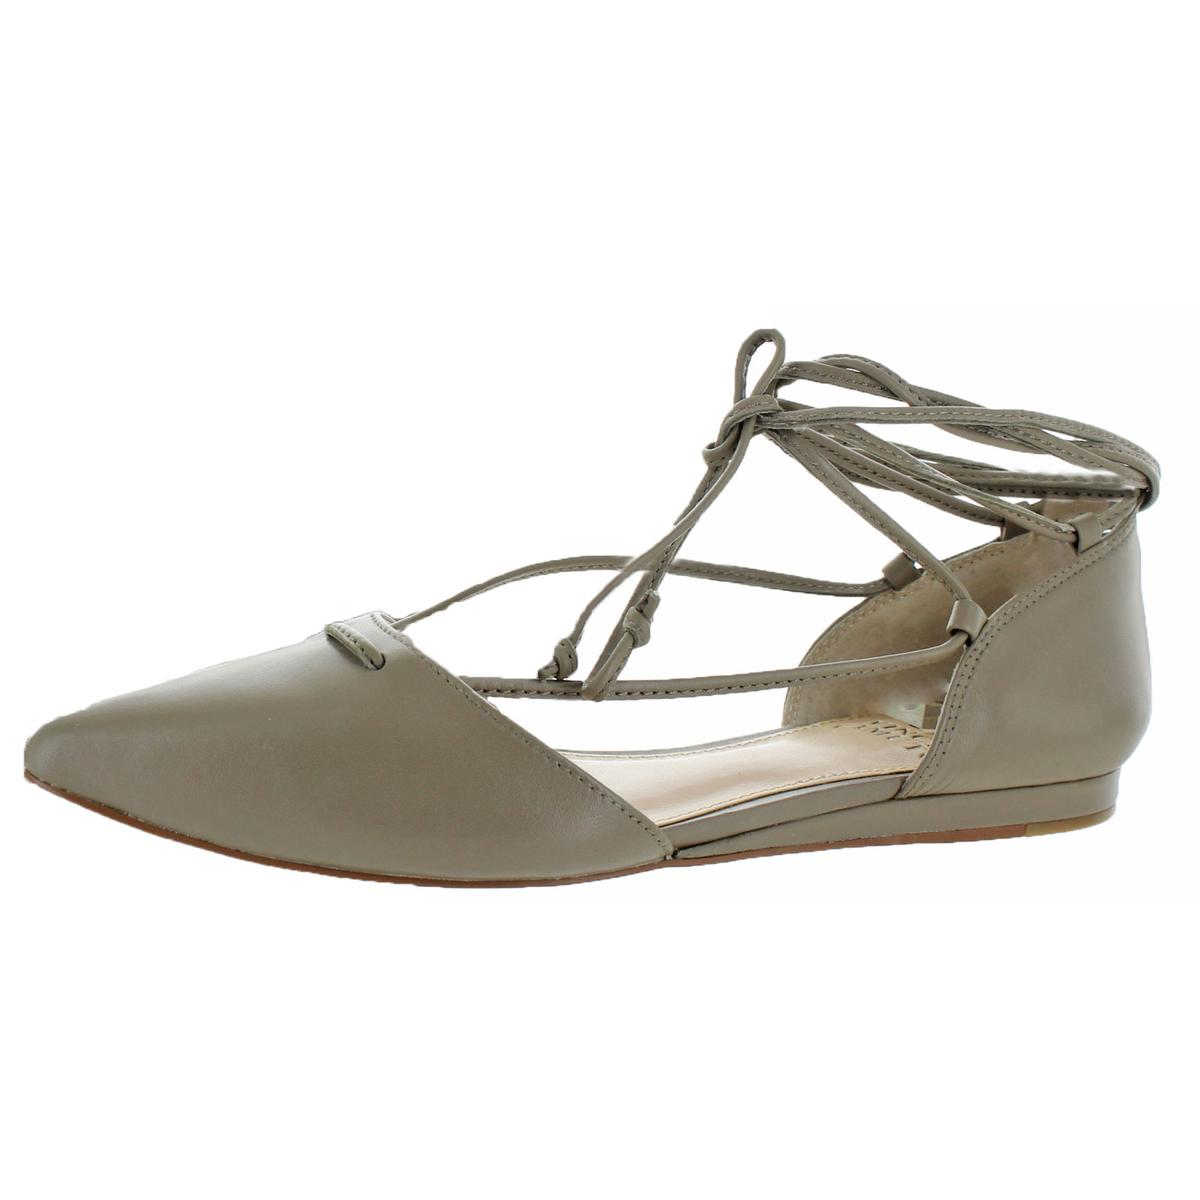 Vince Camuto Womens Hadia Taupe Pointed Toe Flats Shoes 9 Medium (BM) BHFO 3010